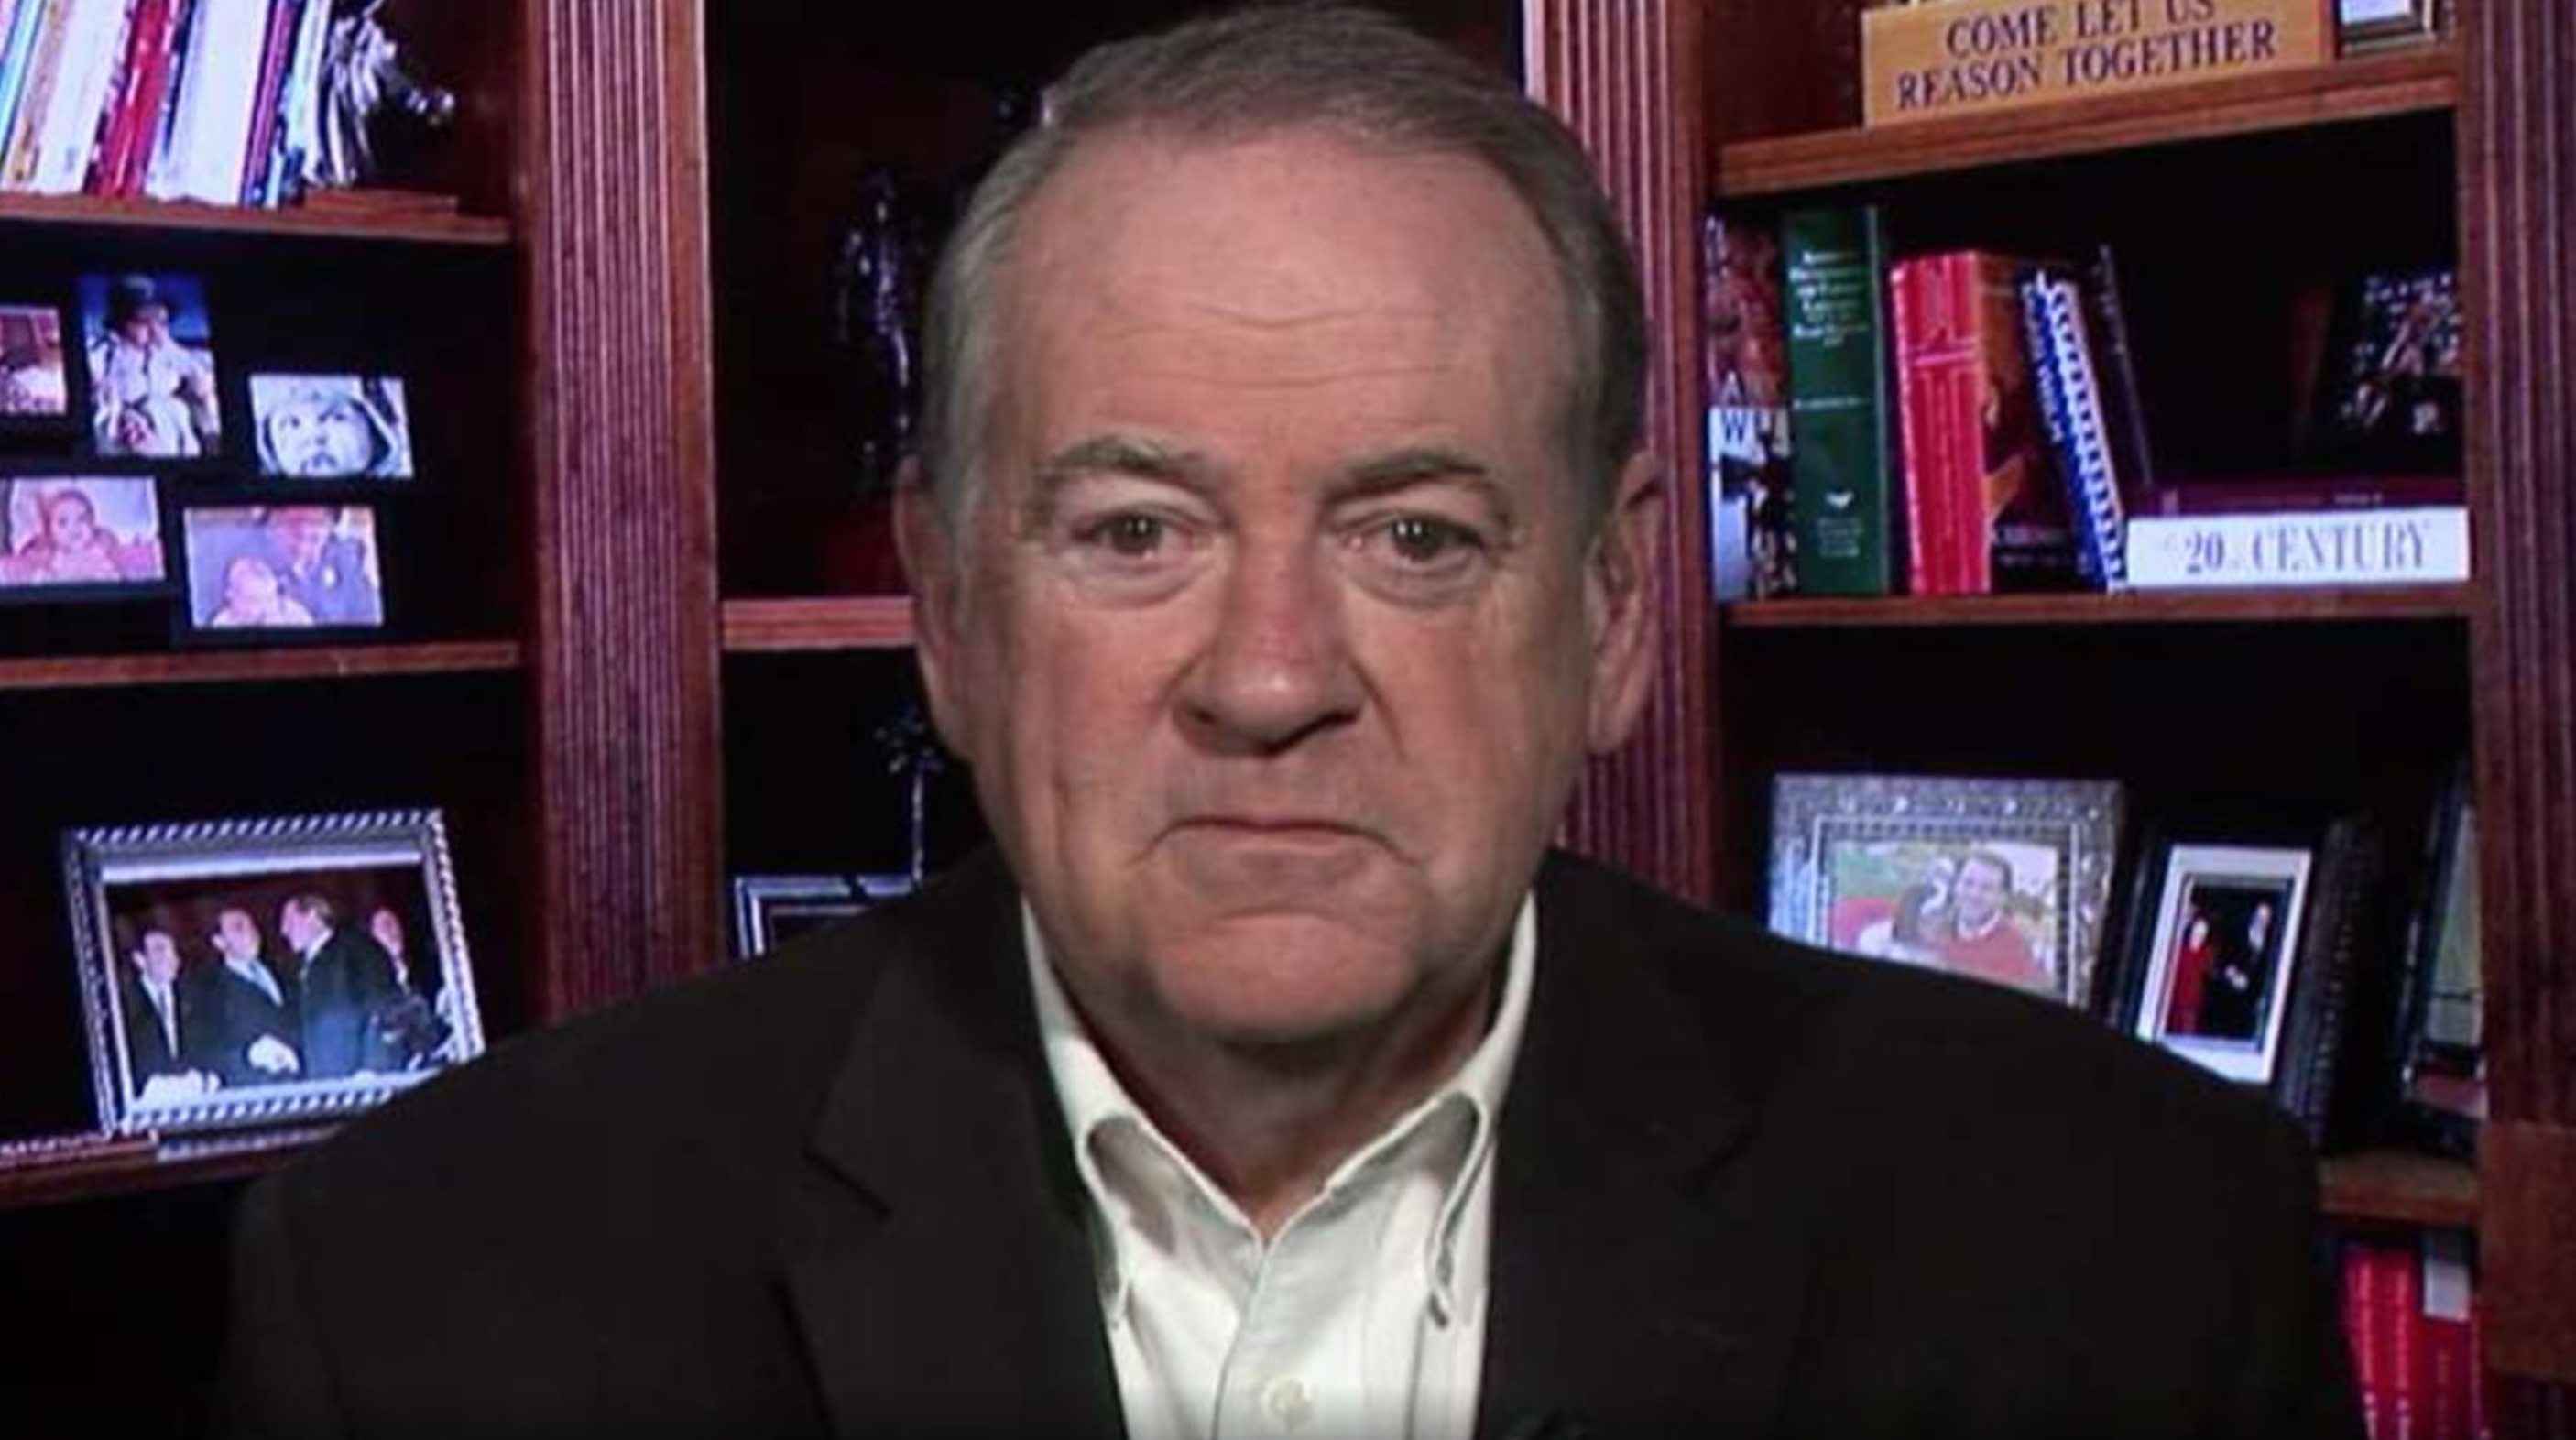 Huckabee: Trump's 'measured' approach on Iran is right, but media 'will never give him credit'